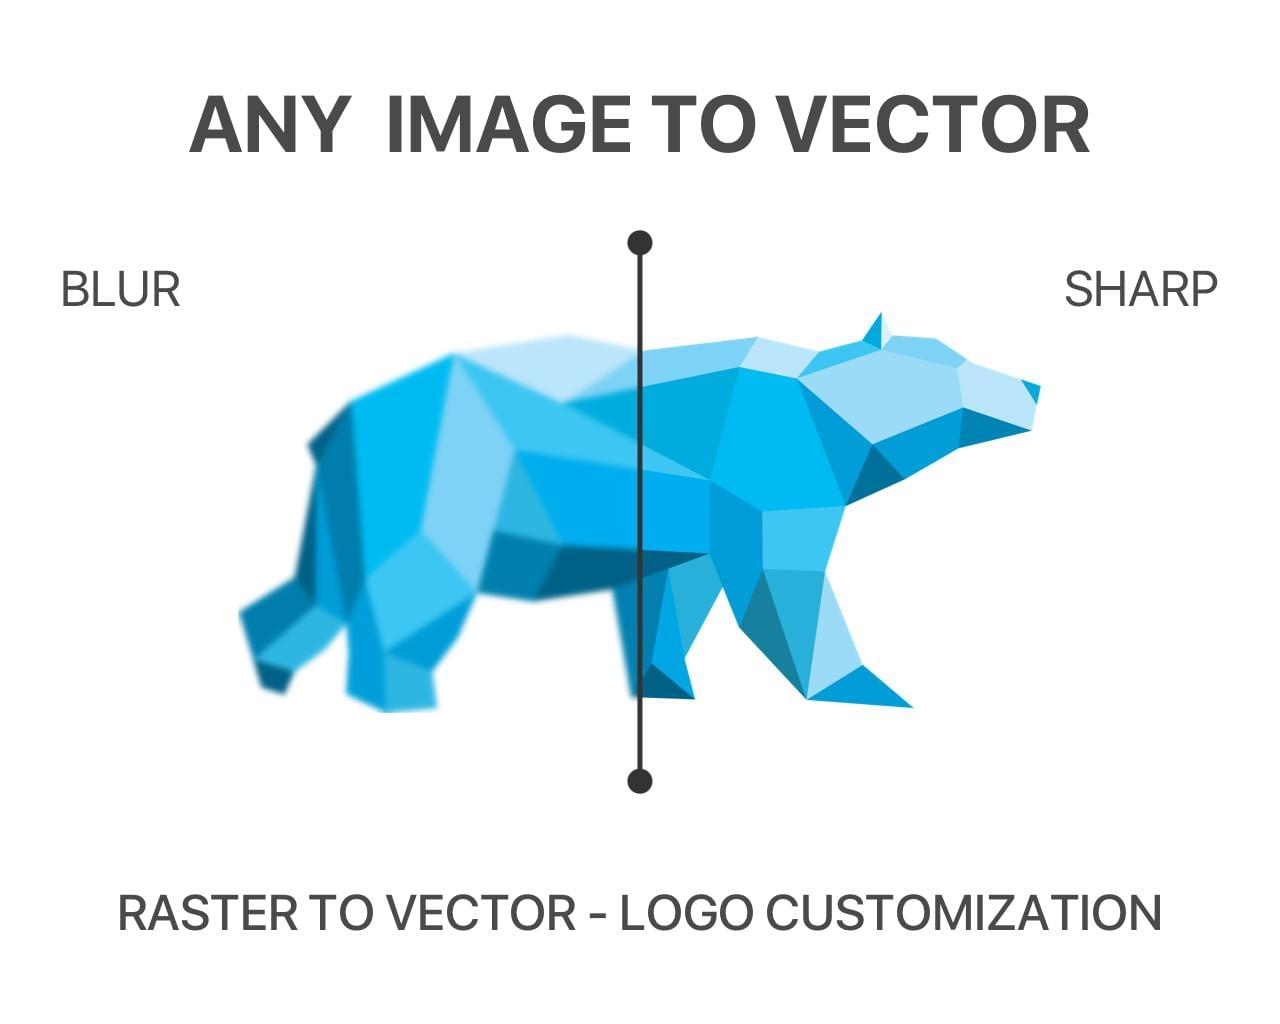 Raster Logo Image to Vector Conversion by masdab - 118898